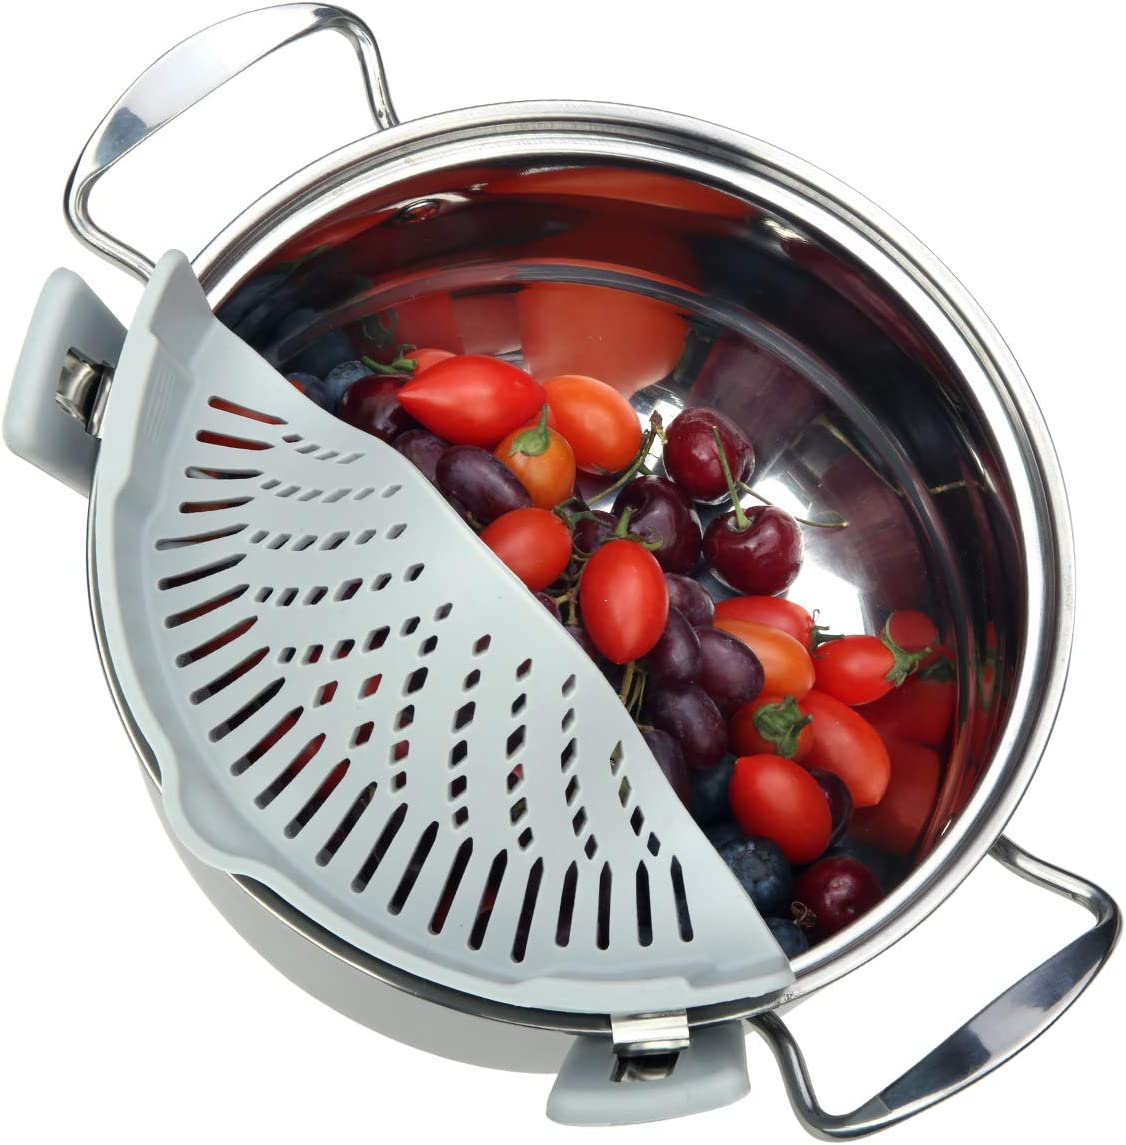 Szxc Clip On Food Strainer Over Pot - Flexible Silicone Strainer Fits Most Pots Pans Bowls - Heat Resistant - Great for Pasta Vegetable Fruit Ground Beef Grease & More - BPA Free Disheasher Safe